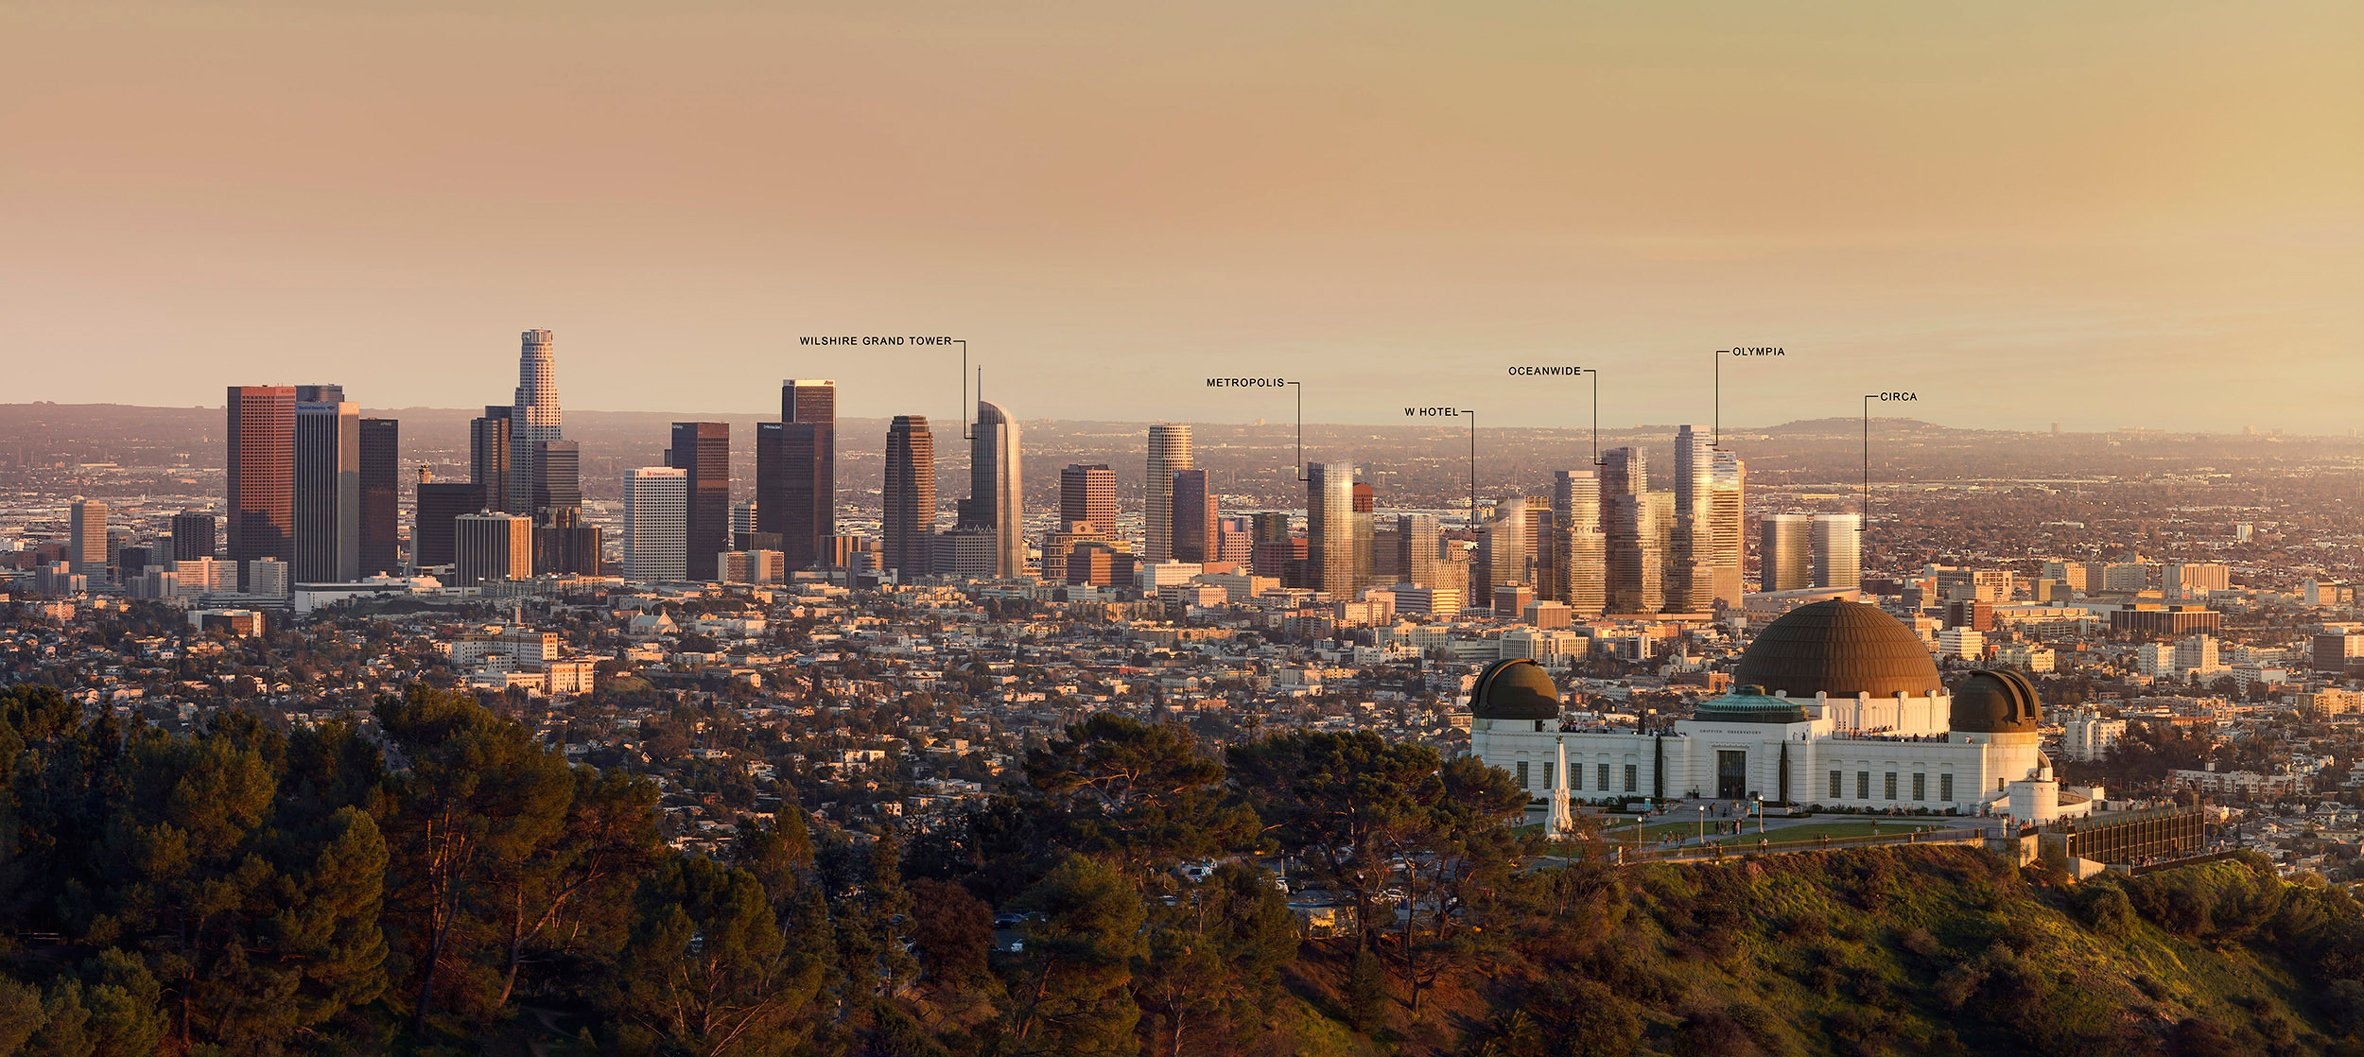 Visualisation reveals how the Los Angeles skyline might look in 2030